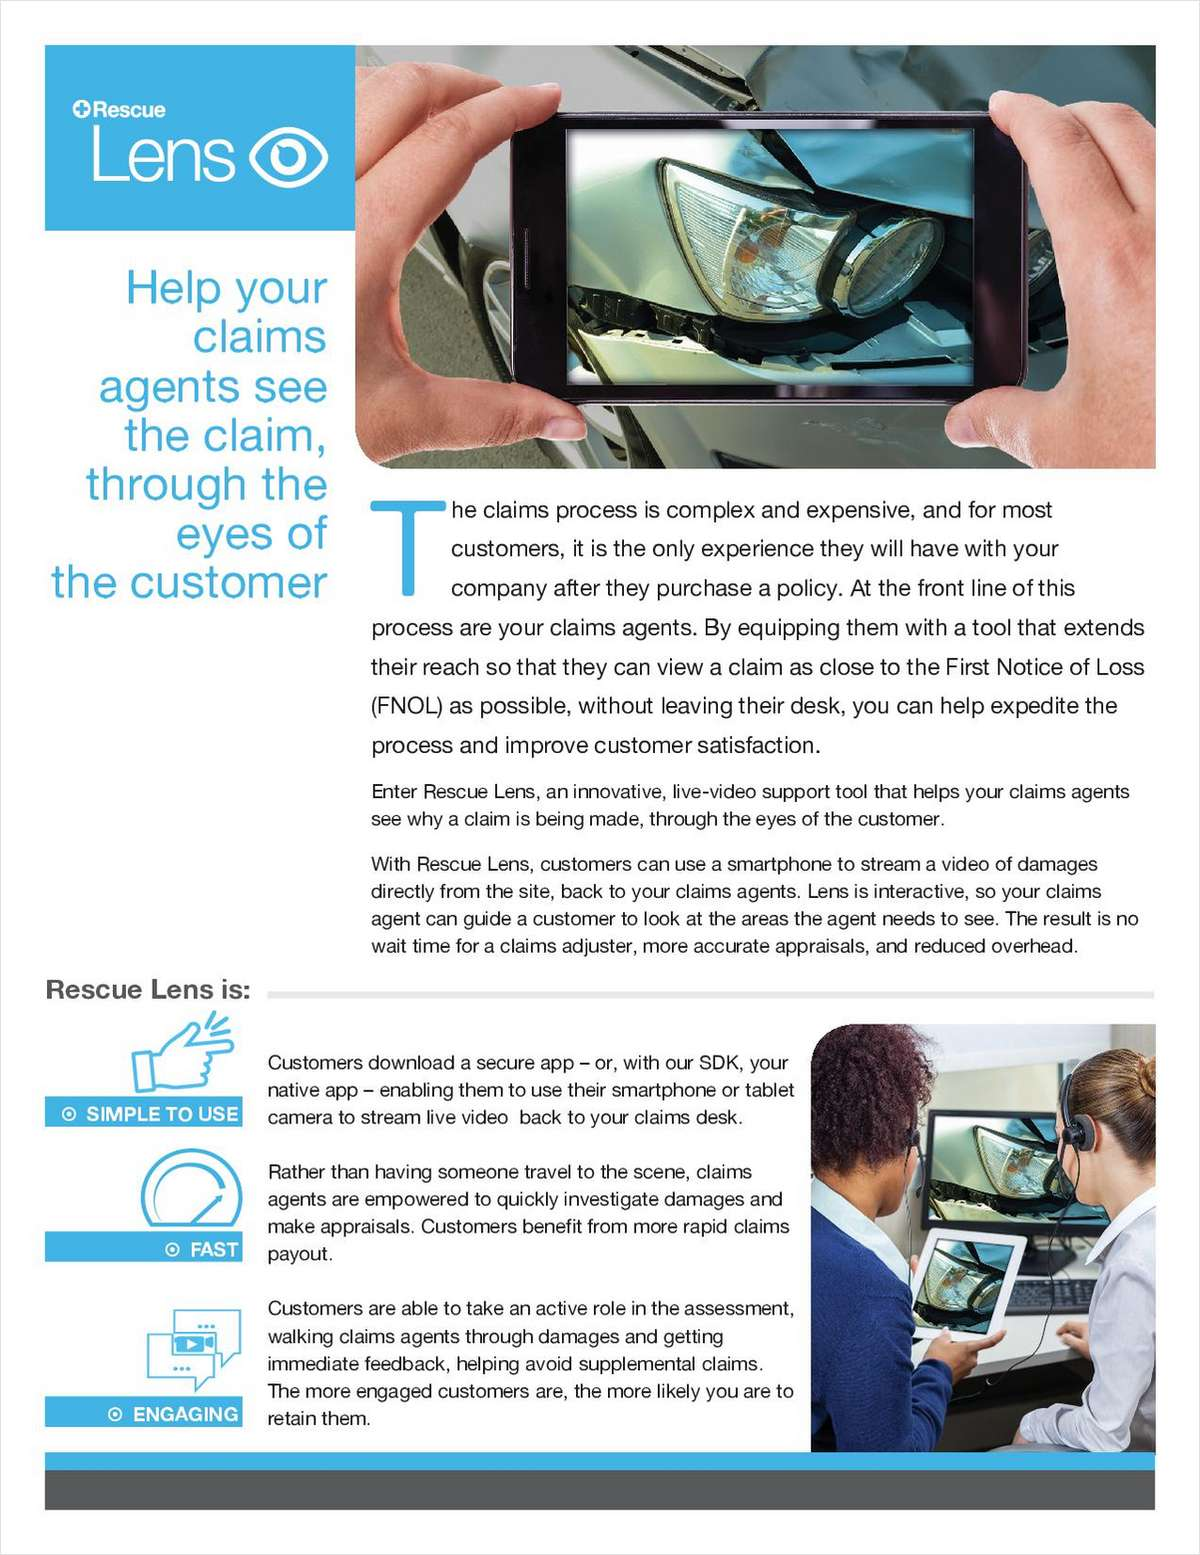 Rescue Lens: Cutting costs, improving efficiency, increasing customer satisfaction